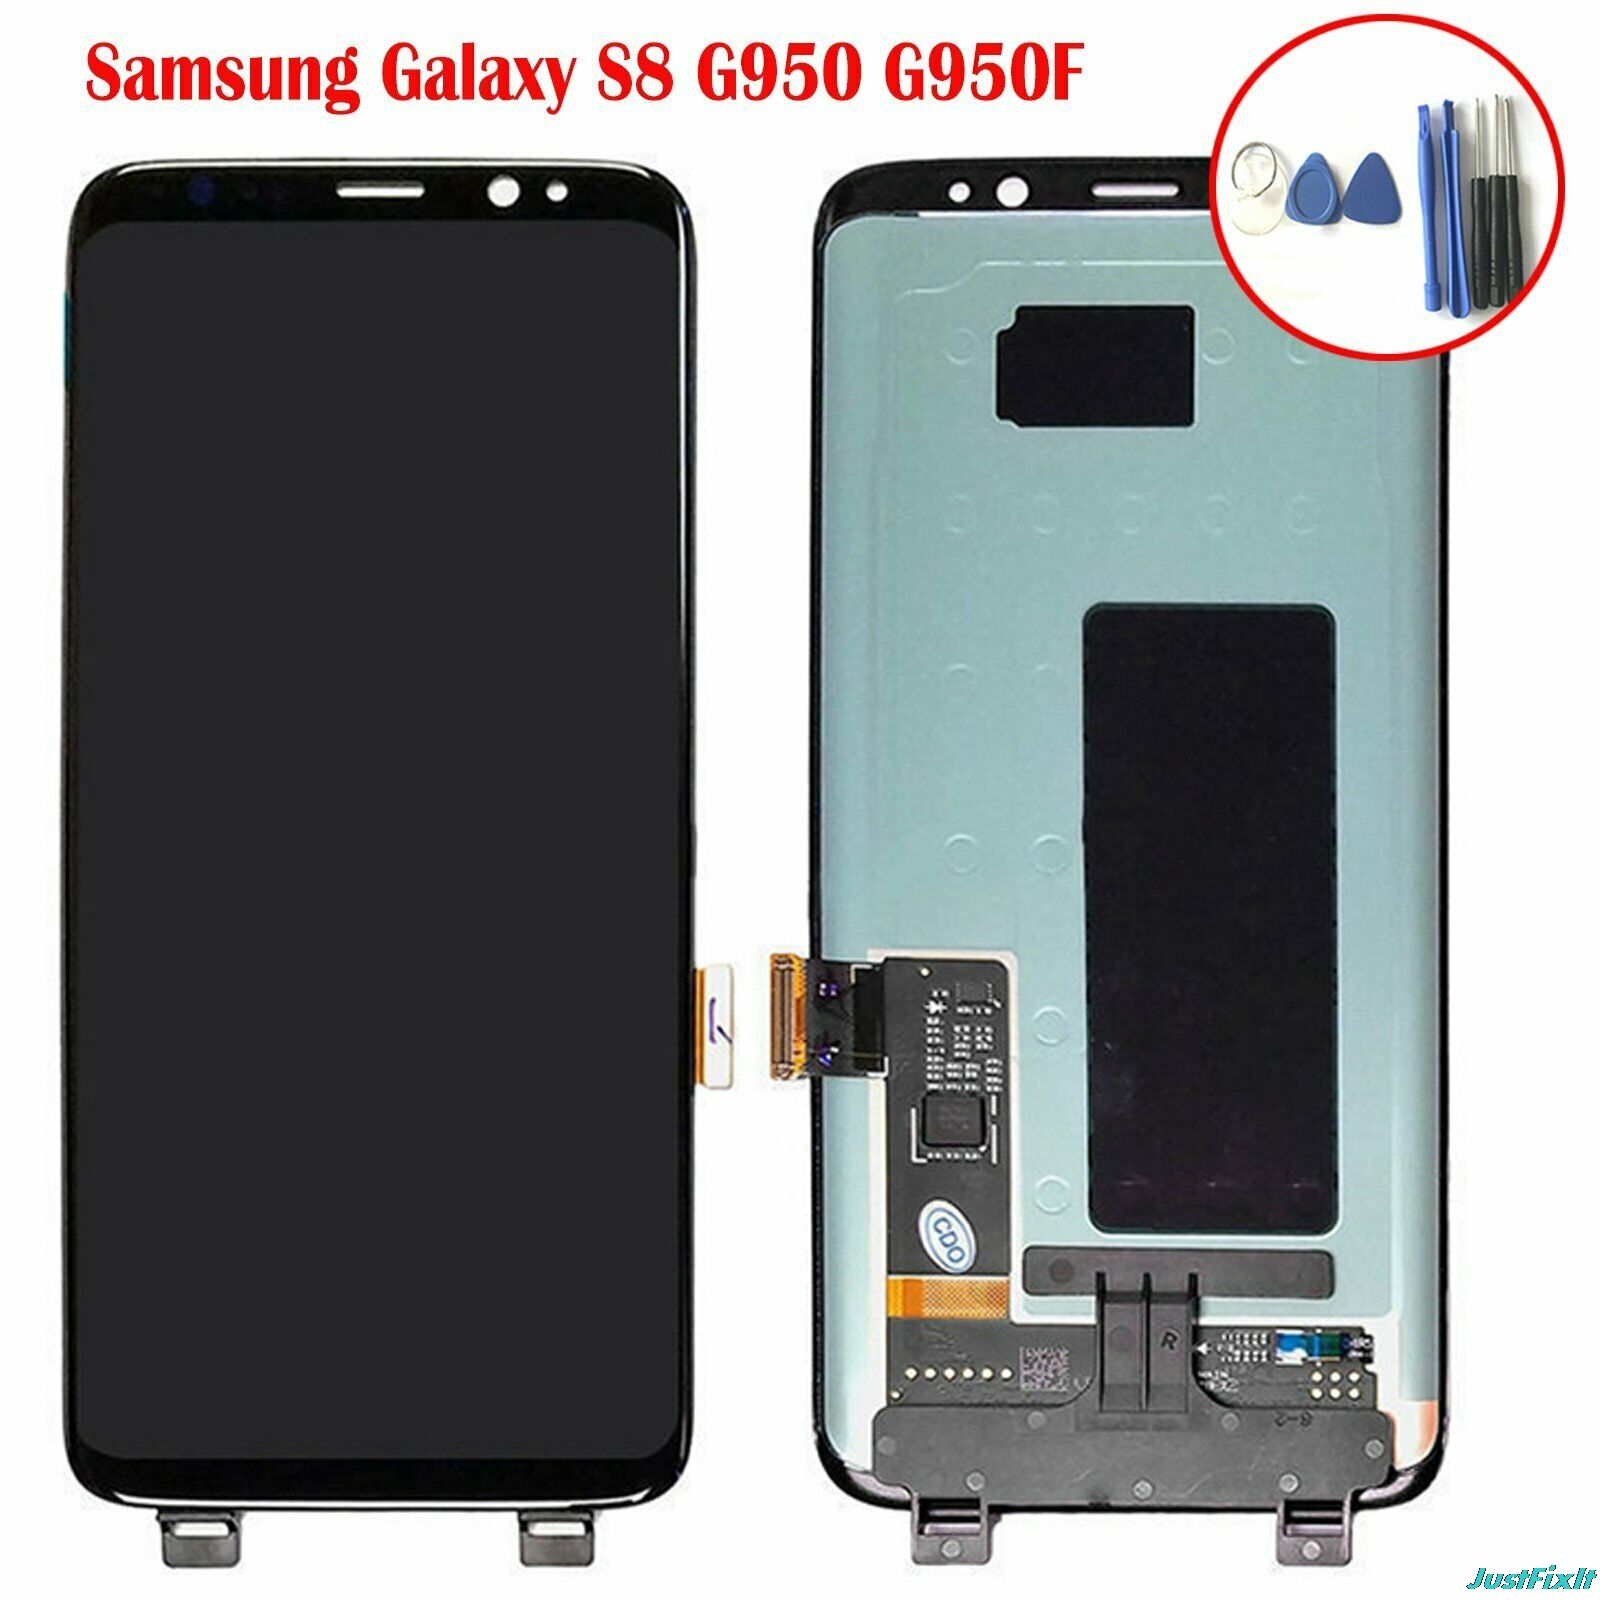 Replace For Samsung Galaxy S8 G950 G950U G950f G950fd shadow Lcd Display With Touch Screen Digitizer  Super AMOLED Screen-in Mobile Phone LCD Screens from Cellphones & Telecommunications    1